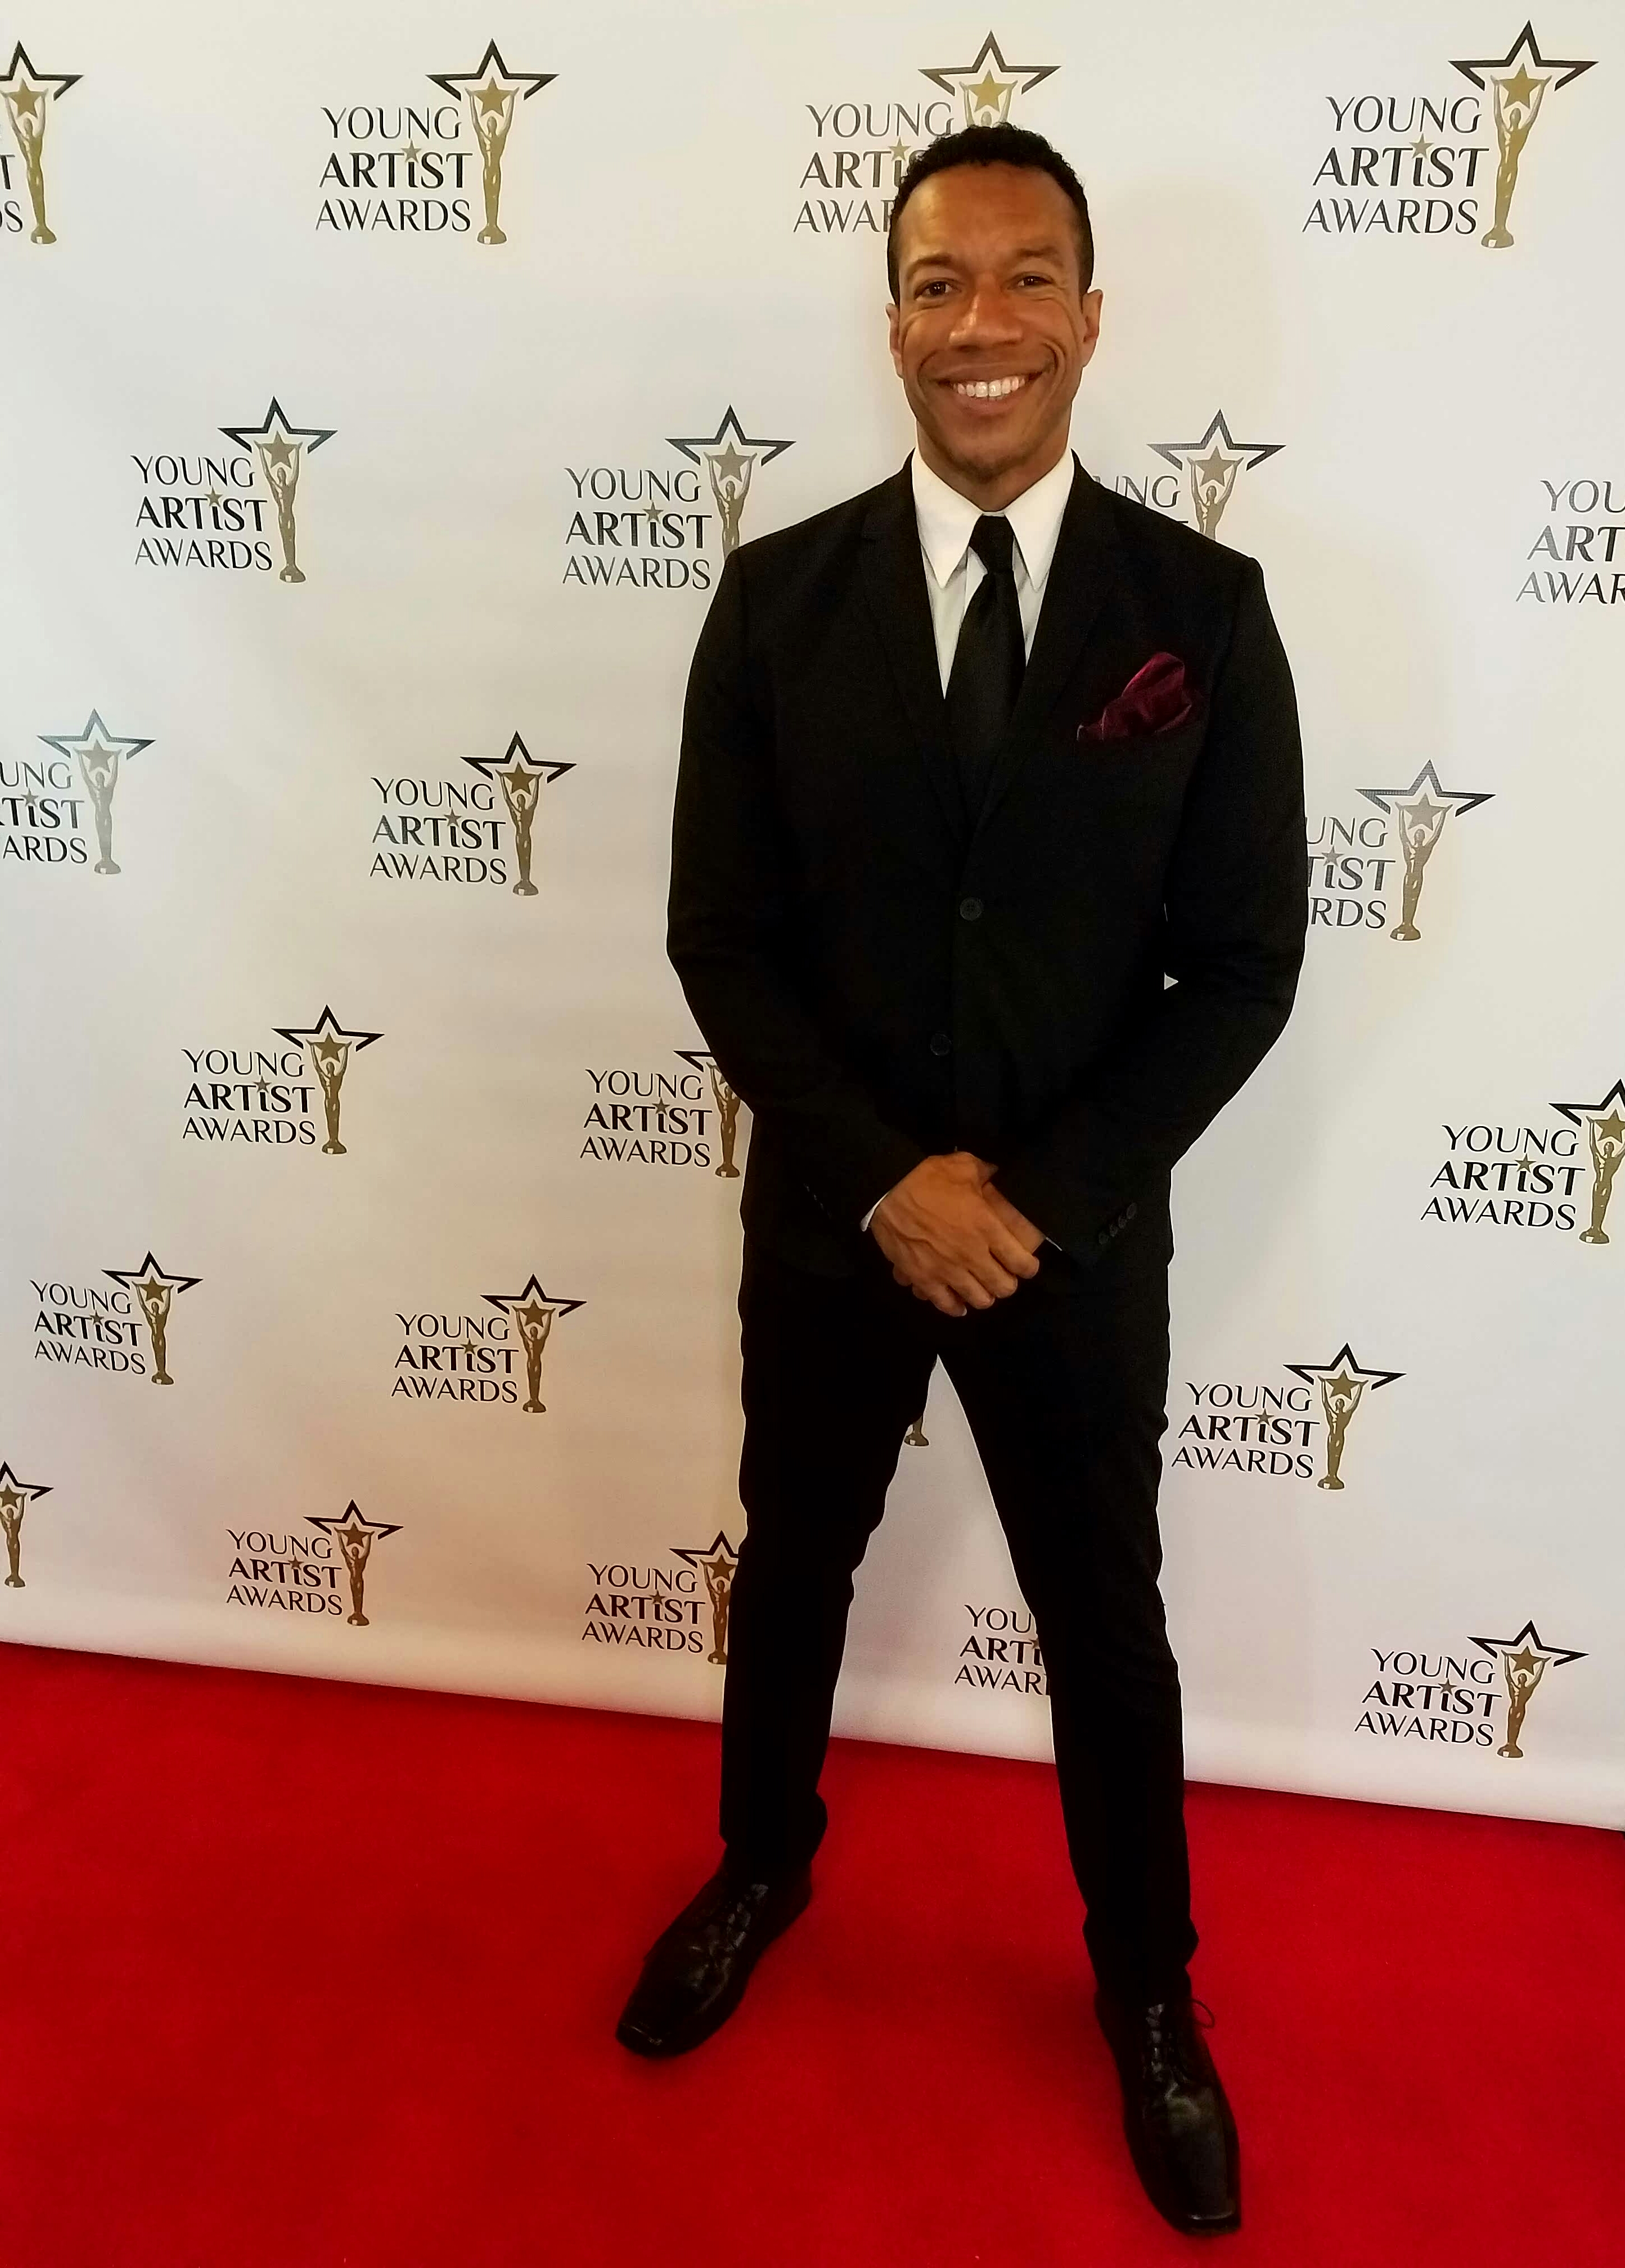 The 38th Annual Young Artist Awards